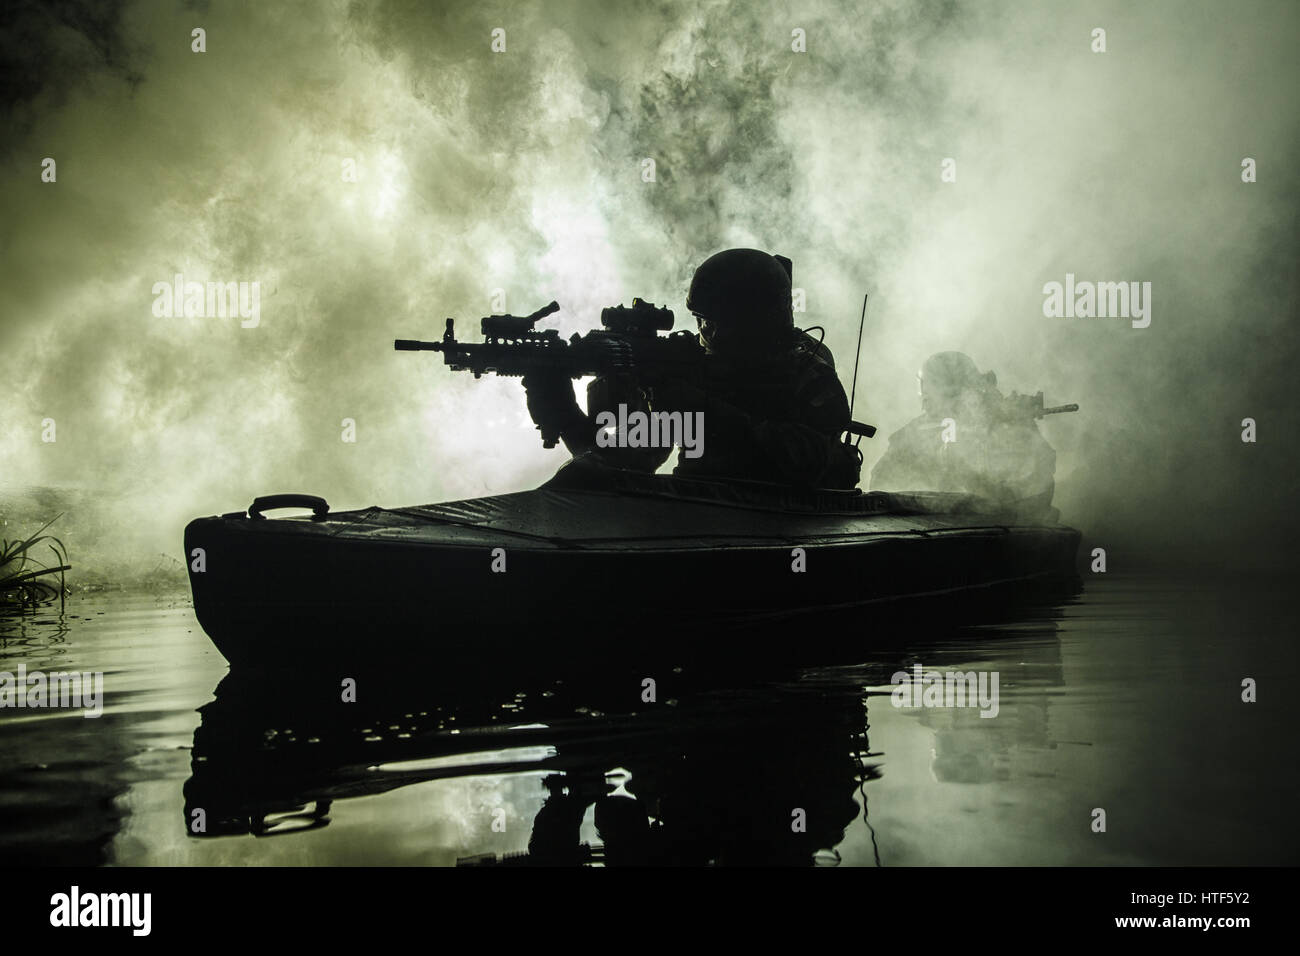 Backlit silhouette of special forces marine operators in military kayak on fire explosion background. Battle operation, - Stock Image